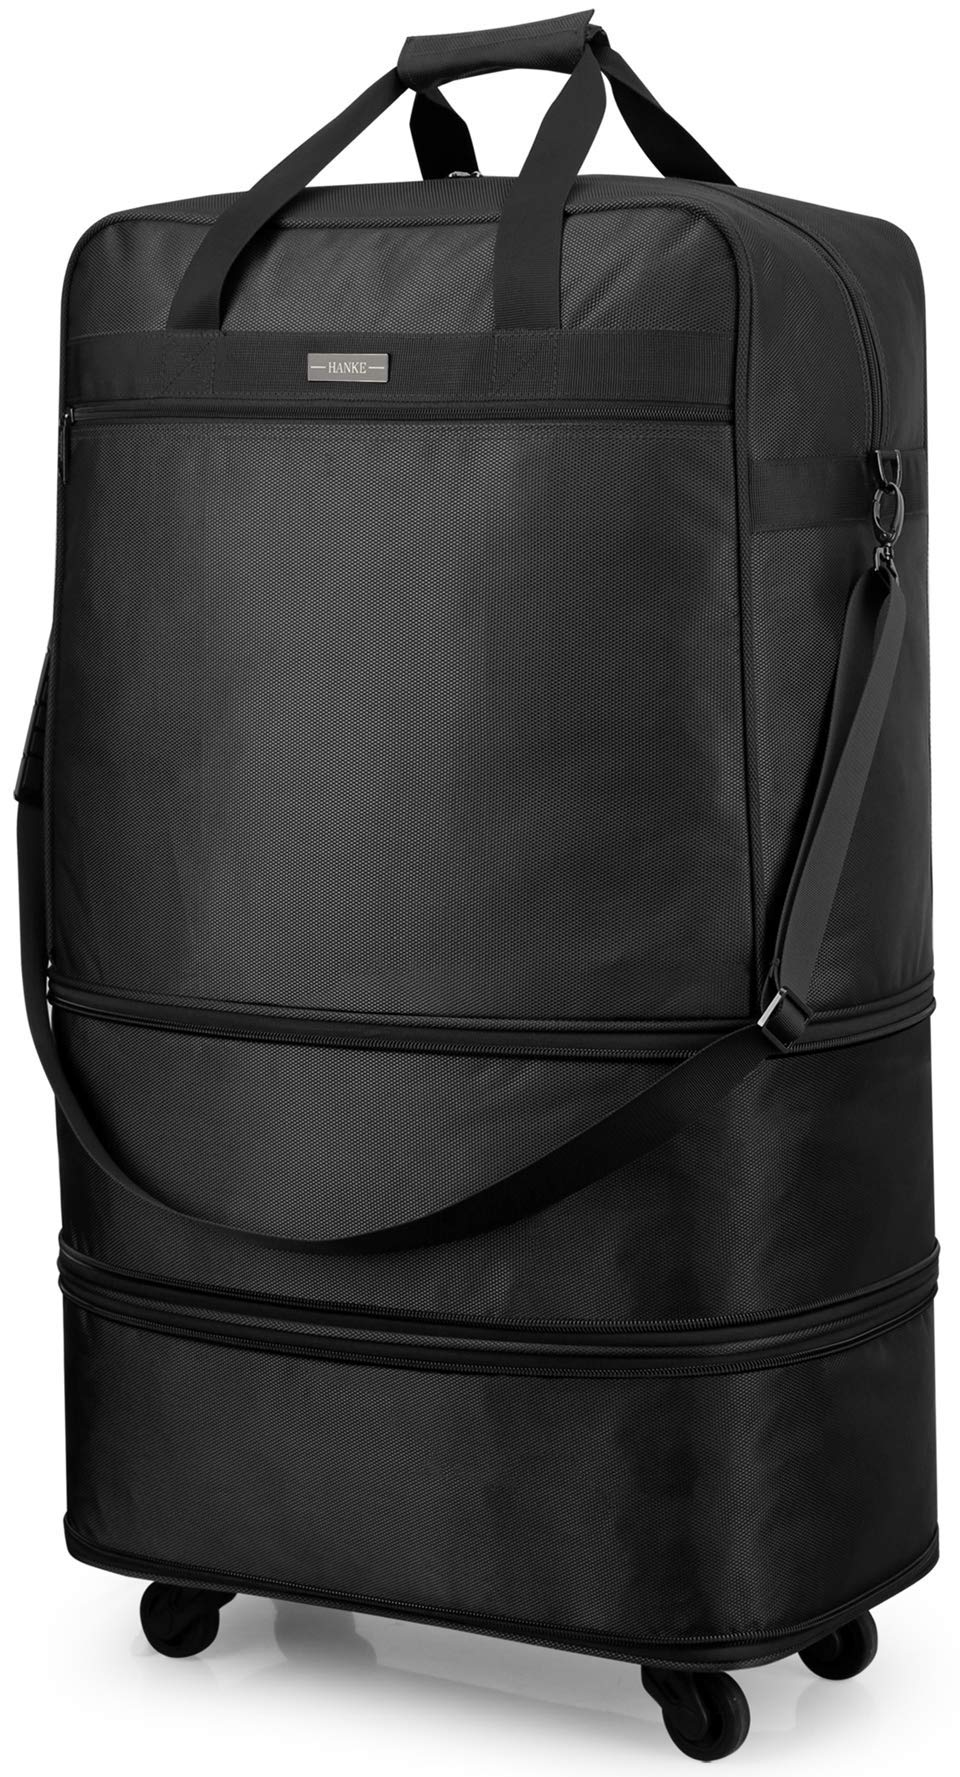 Hanke Expandable Foldable Suitcase Luggage Rolling Travel Bag Duffel Tote Bag for Men Women Lightweight Suitcase Large Capacity Luggage with Universal Wheel by Hanke